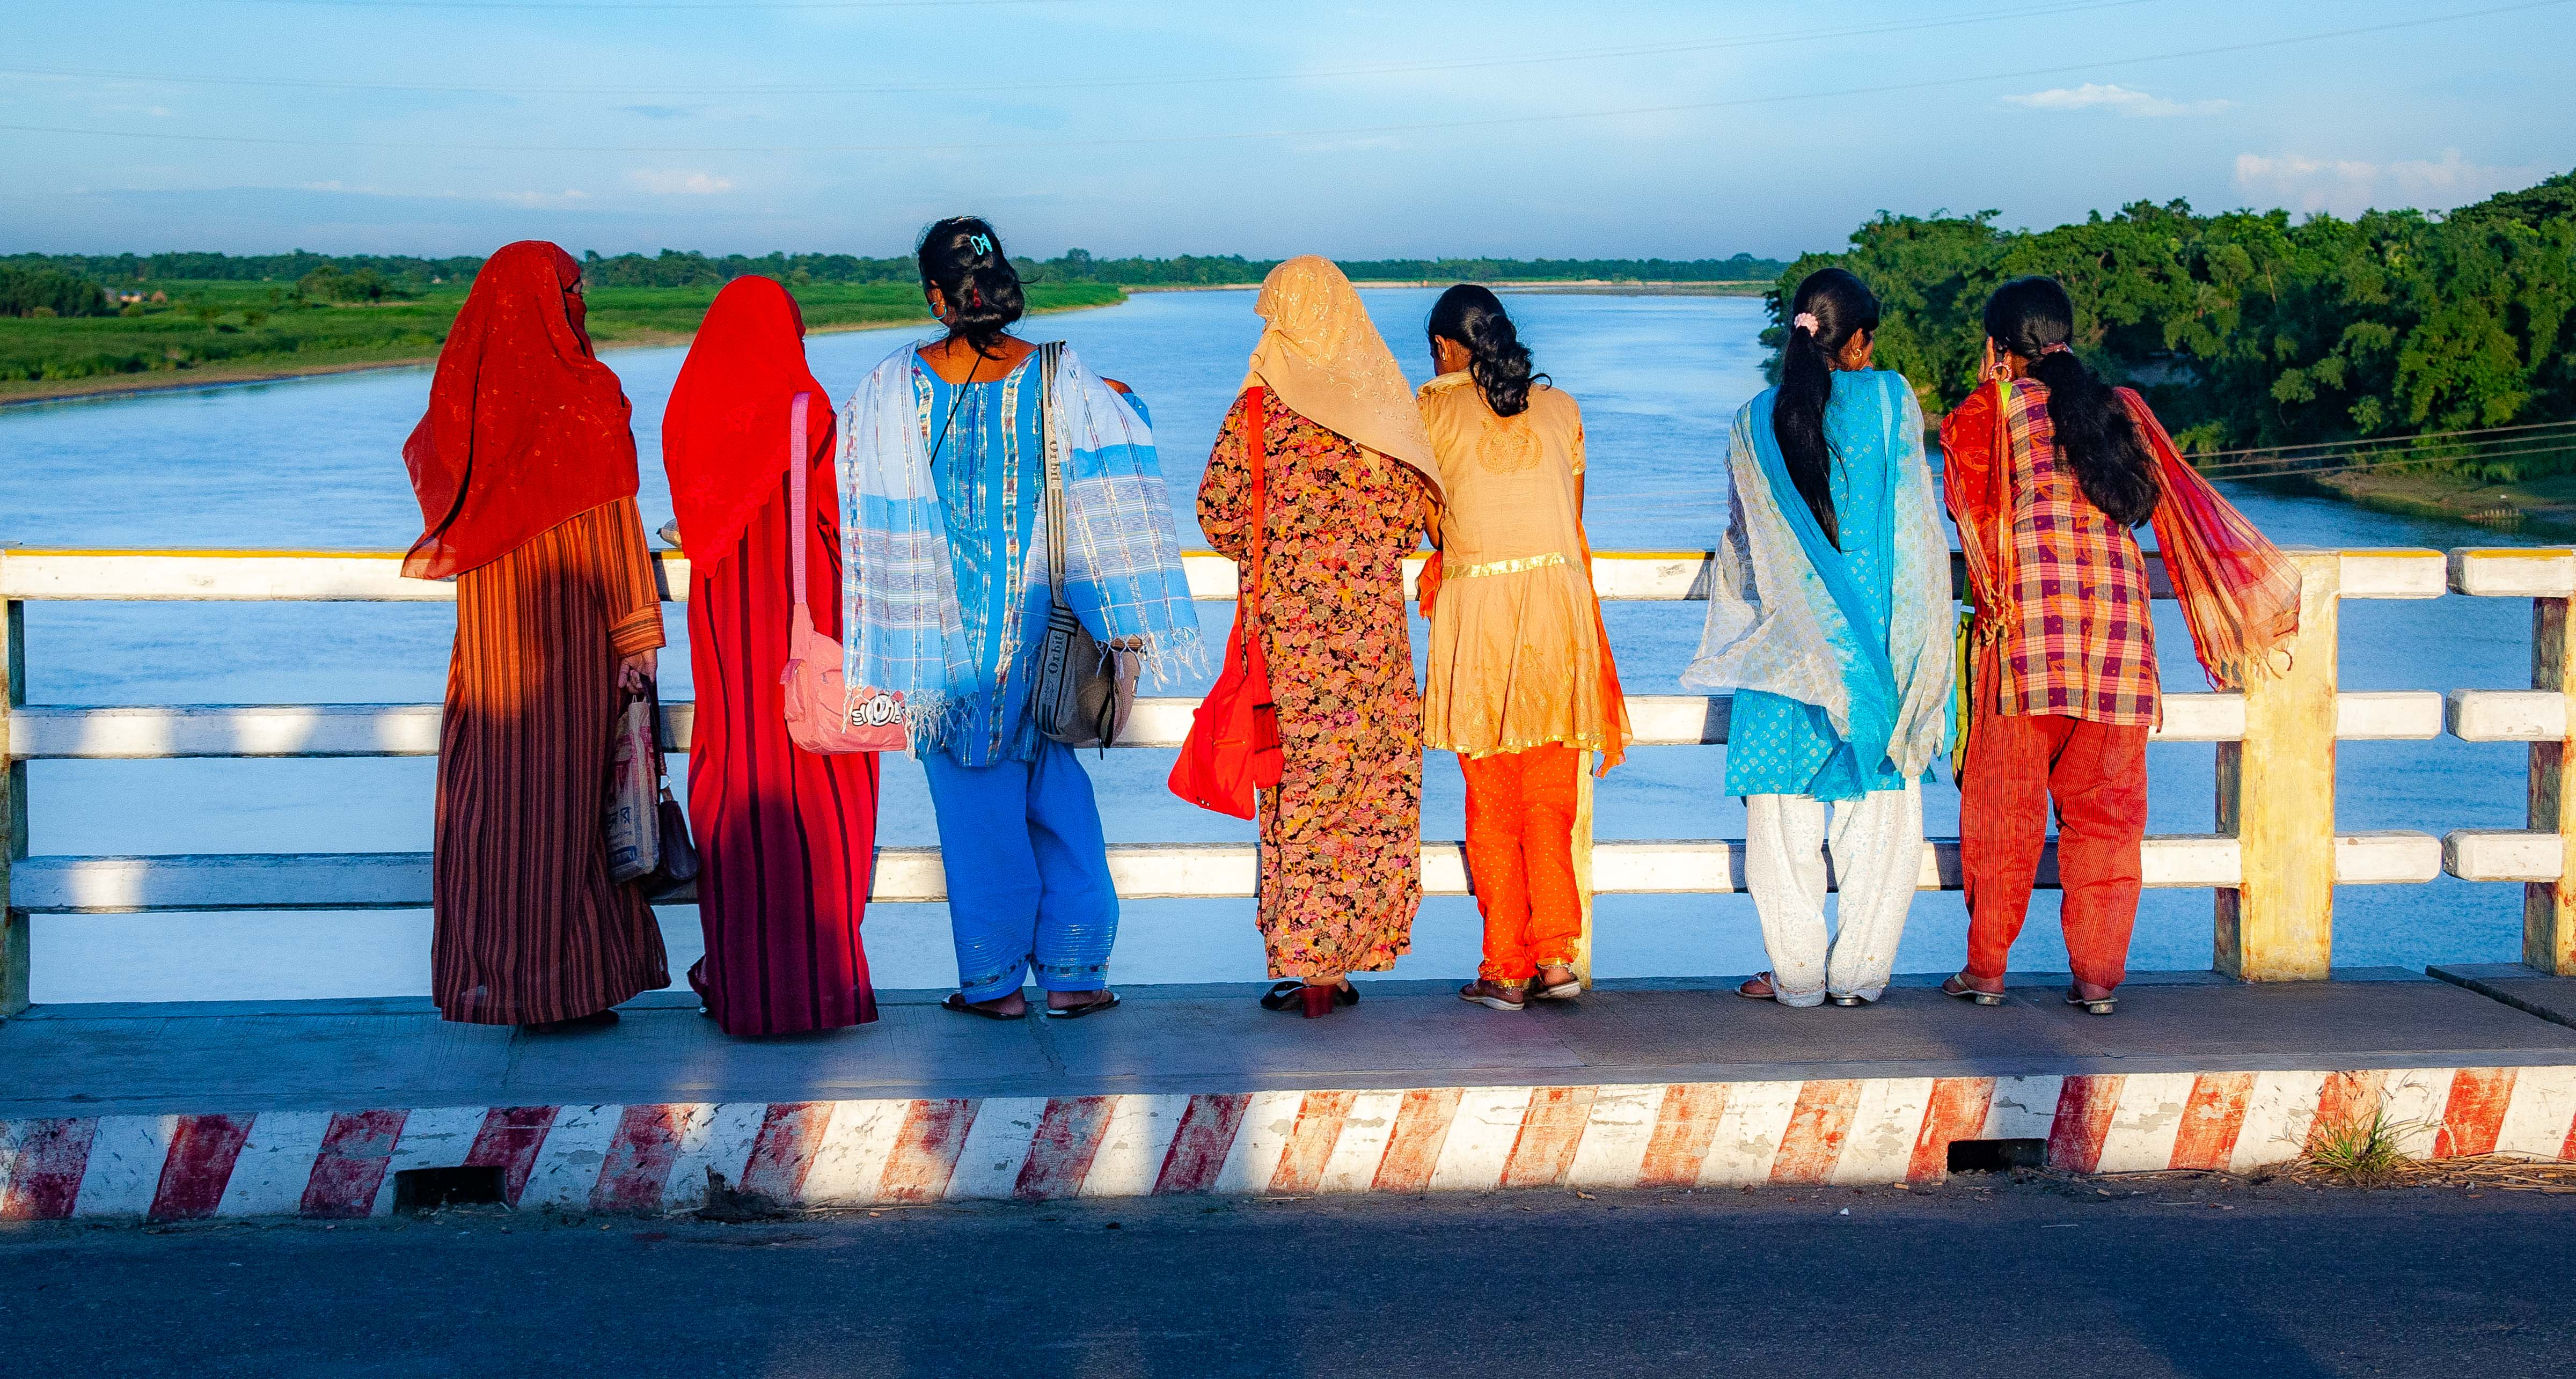 Bangladesh, Jamalpur Prov, Standing At Bridge, 2009, IMG 8874